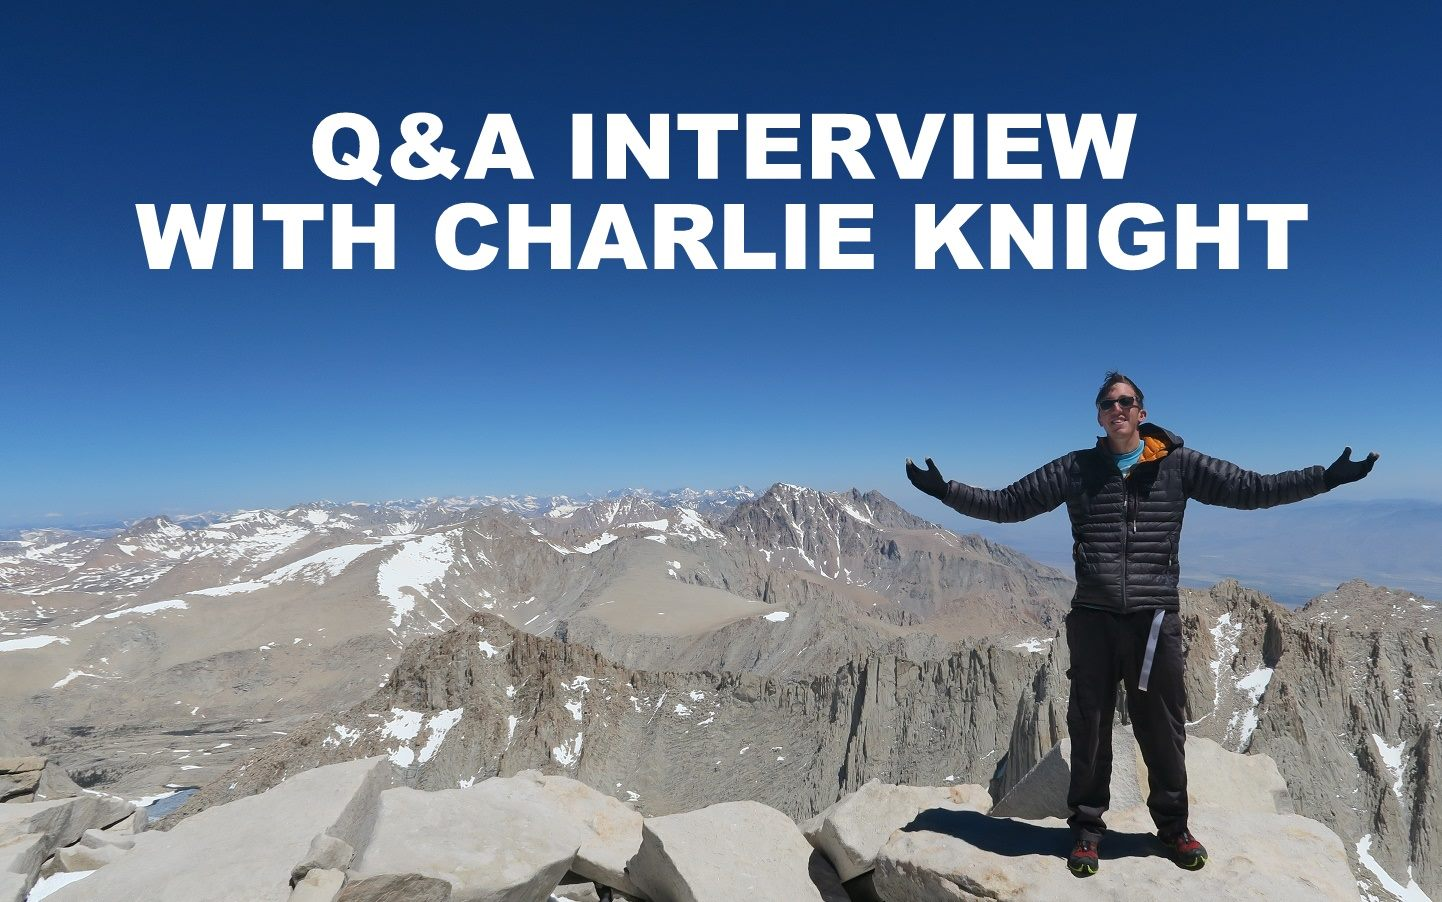 Q&A interview with Charlie Knight